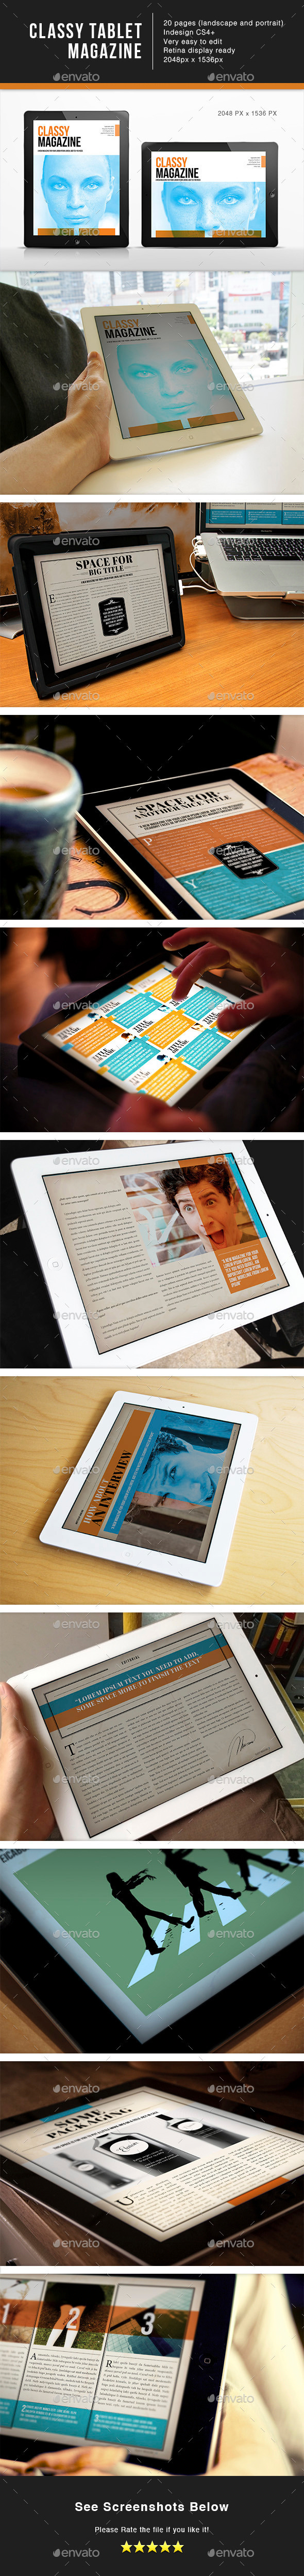 Classy Magazine for Tablet Template - Digital Magazines ePublishing